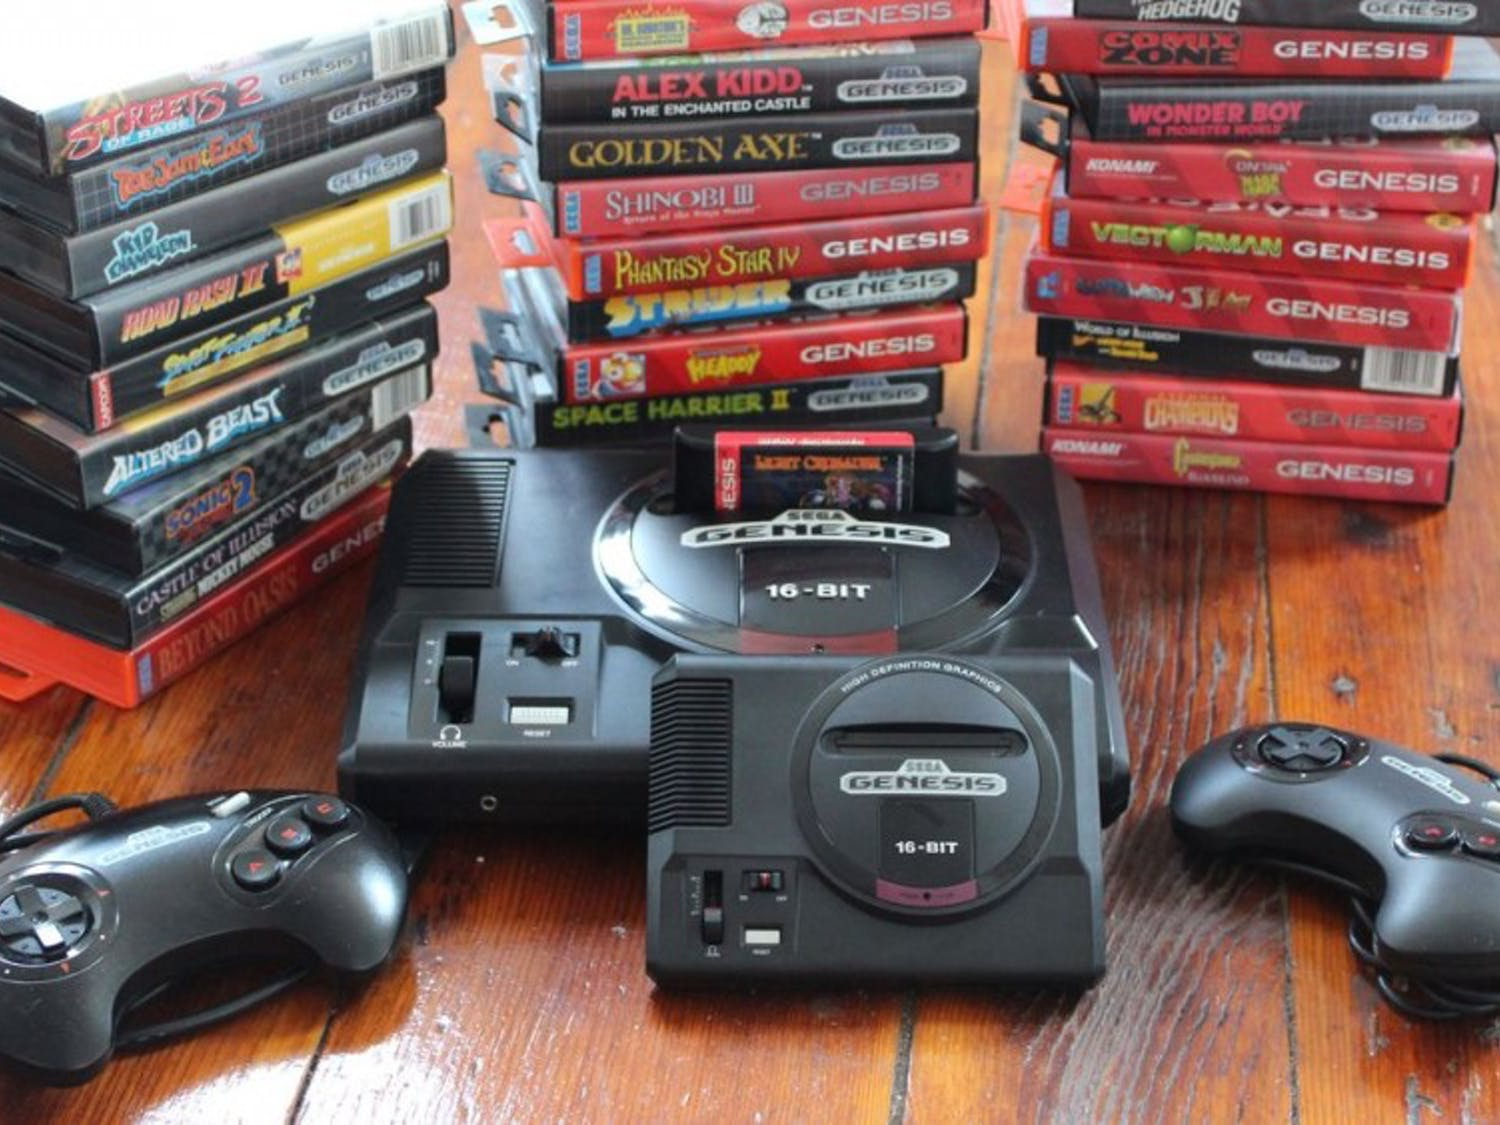 Sega Genesis Mini is a blast to the past, immersing users into the classic hits that proof this console is a worthy entry into the market.